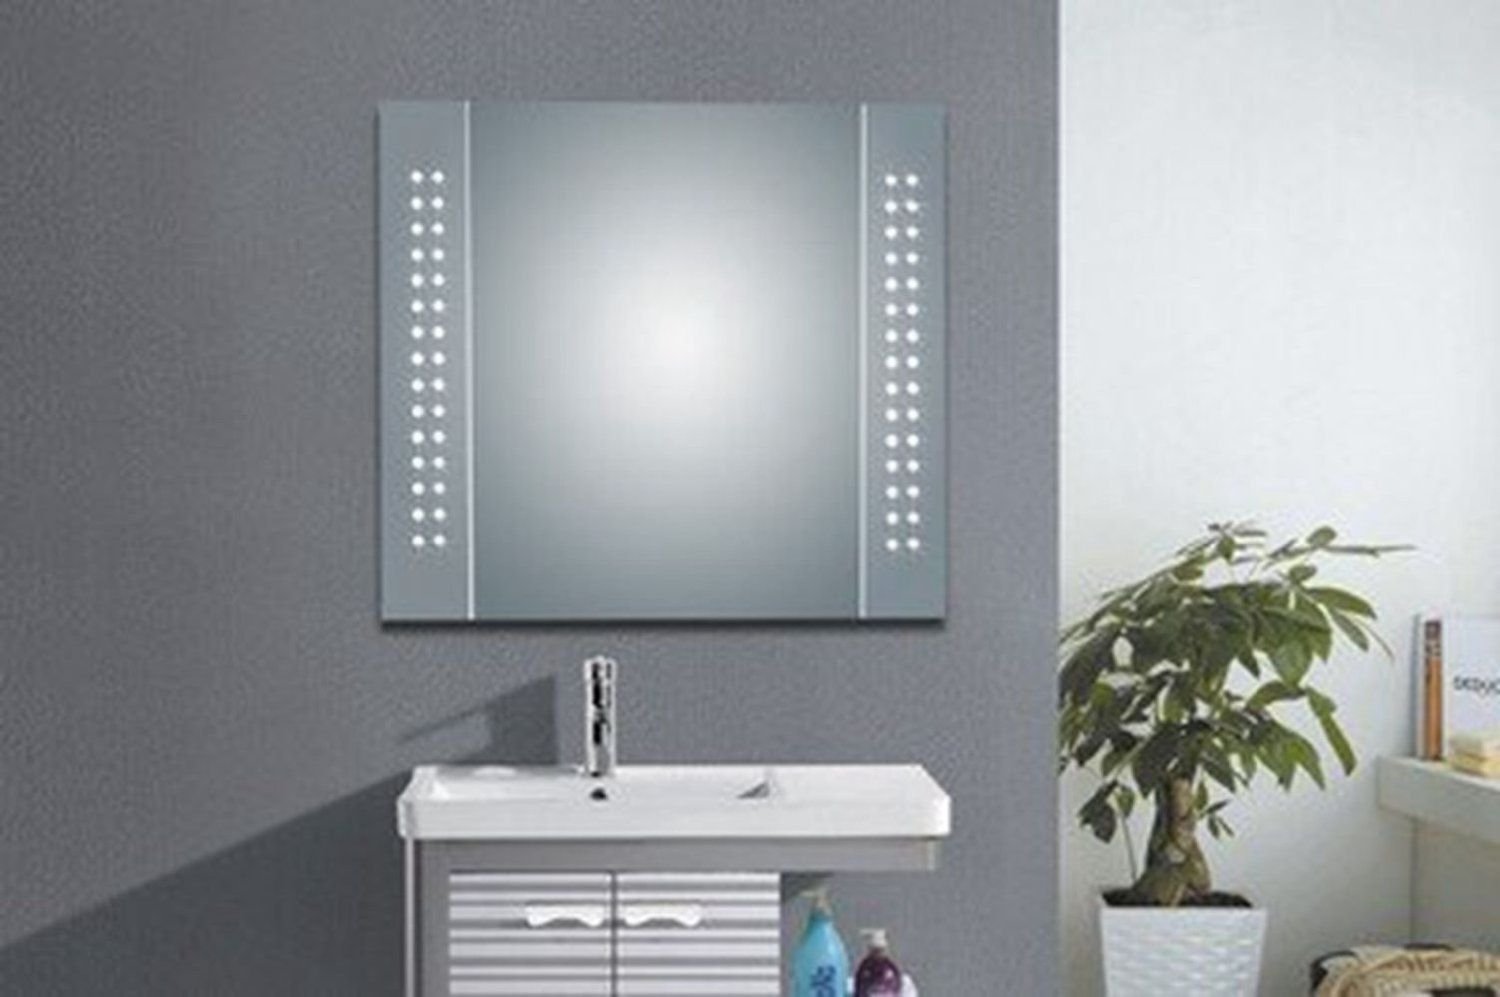 hapilife 60 bathroom led mirror illuminated demister with shaver